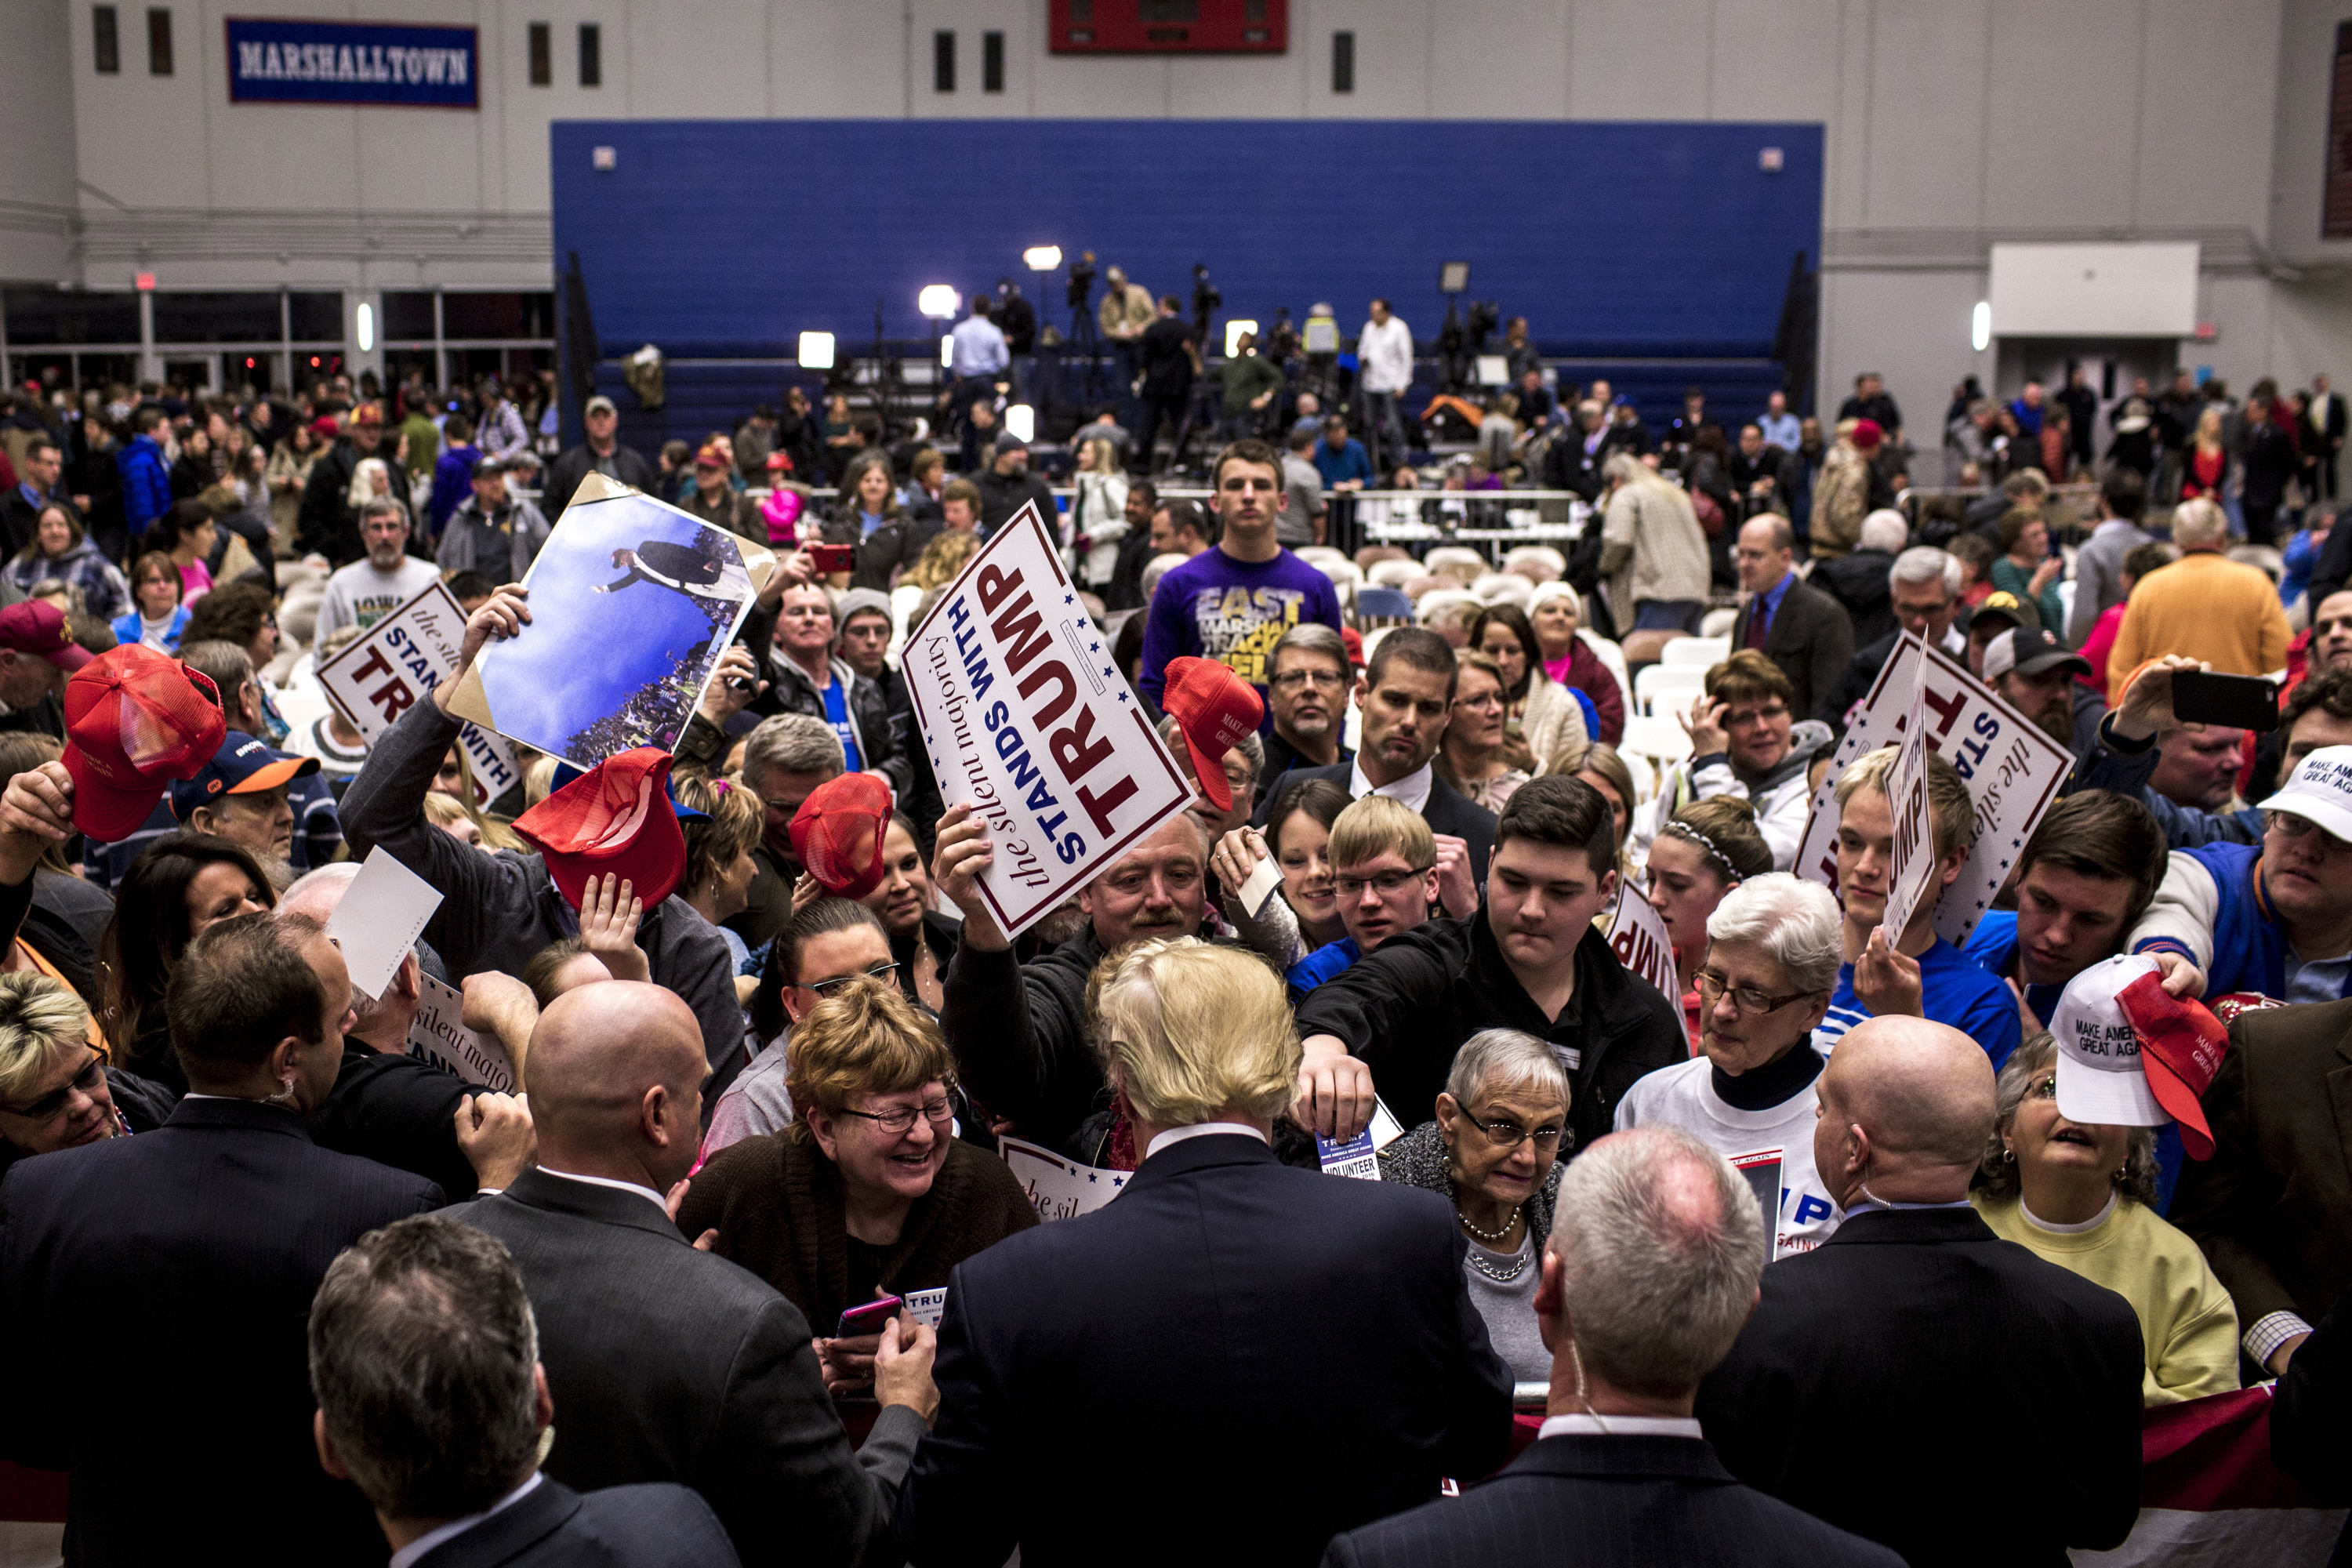 Donald Trump greets supporters at a rally on Jan. 26, 2016, in Des Moines, Iowa.